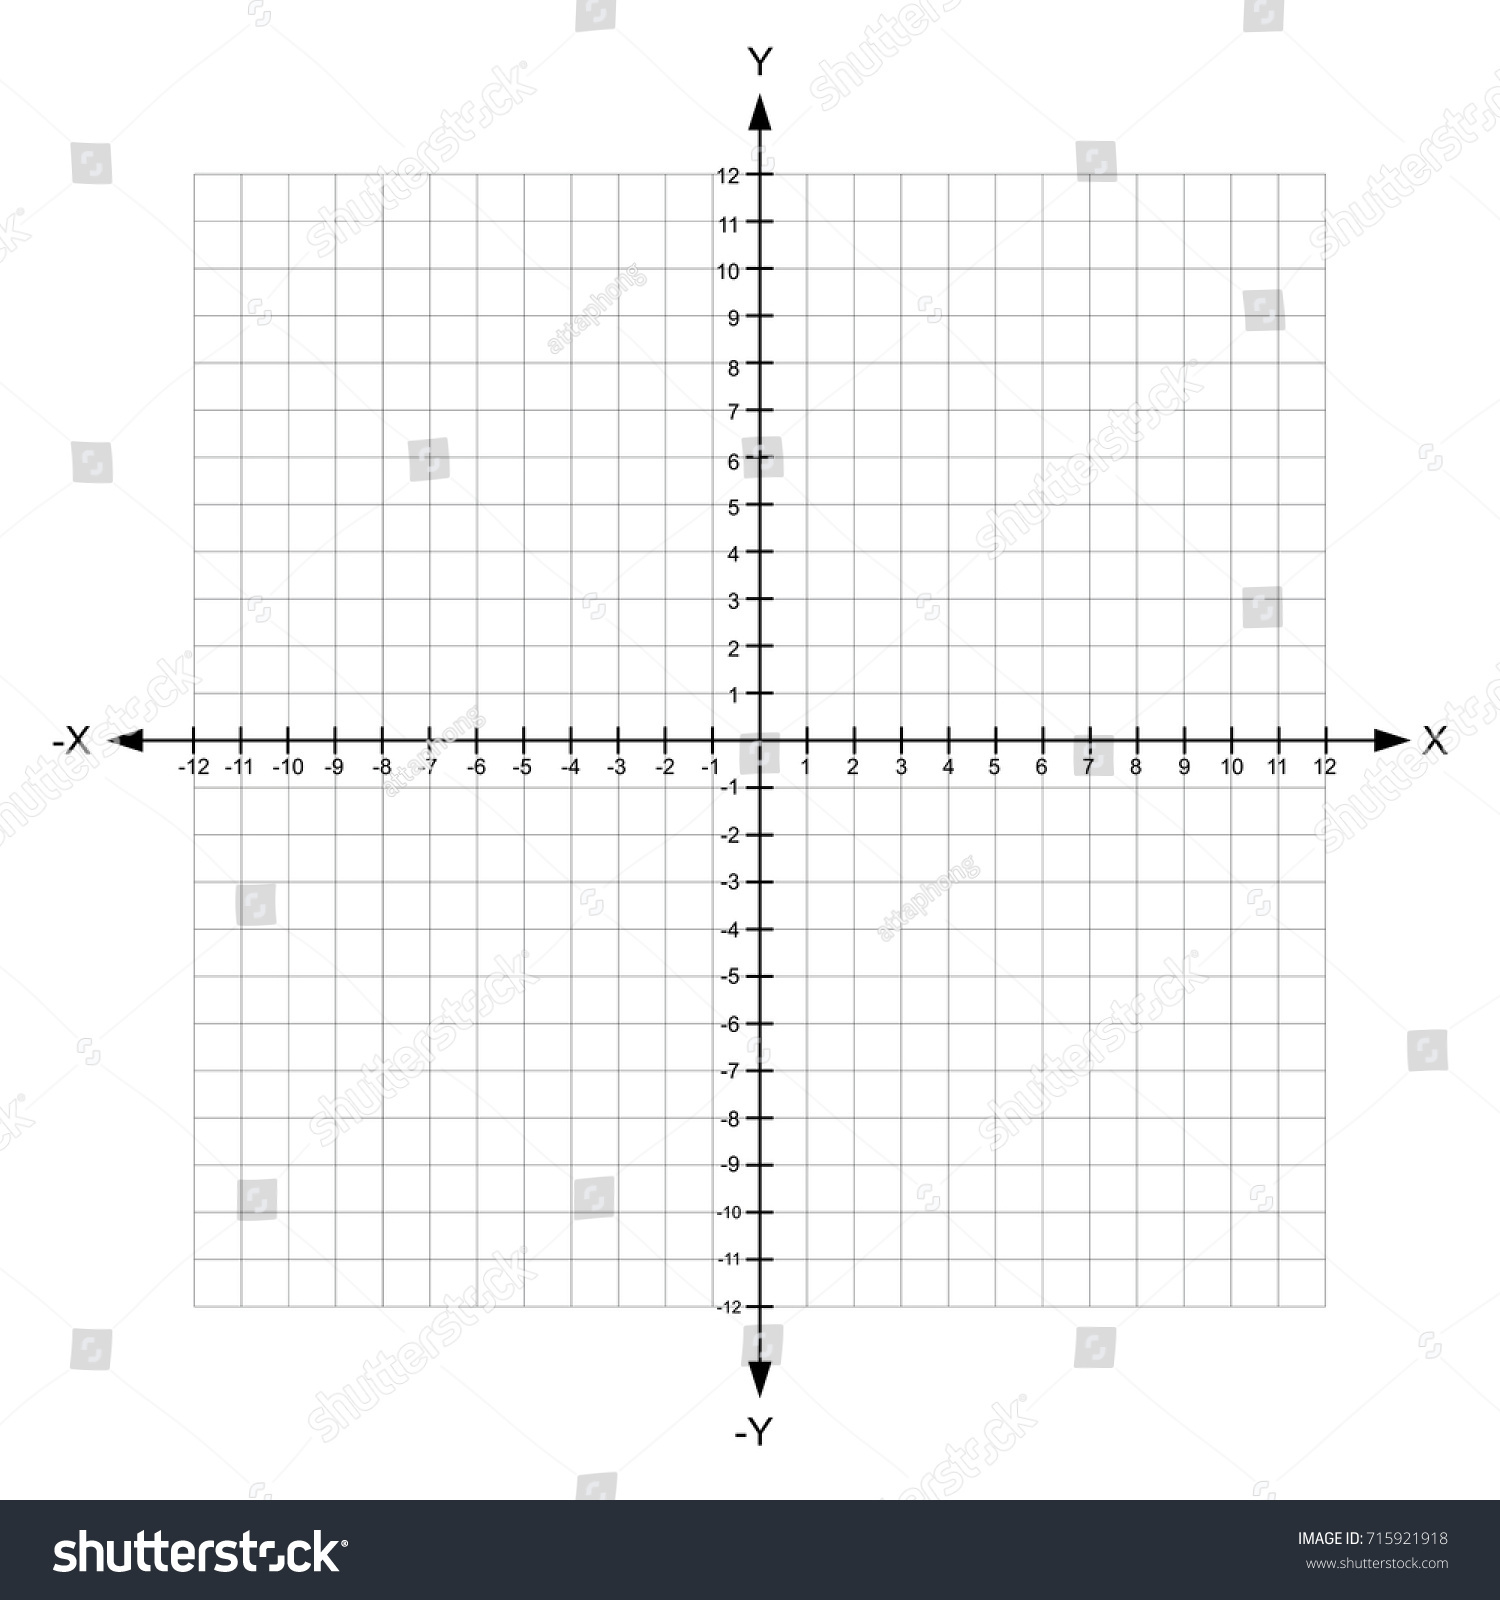 worksheet Graph Paper X And Y Axis blank x y axis cartesian coordinate stock vector 715921918 and plane with numbers on white background illustration